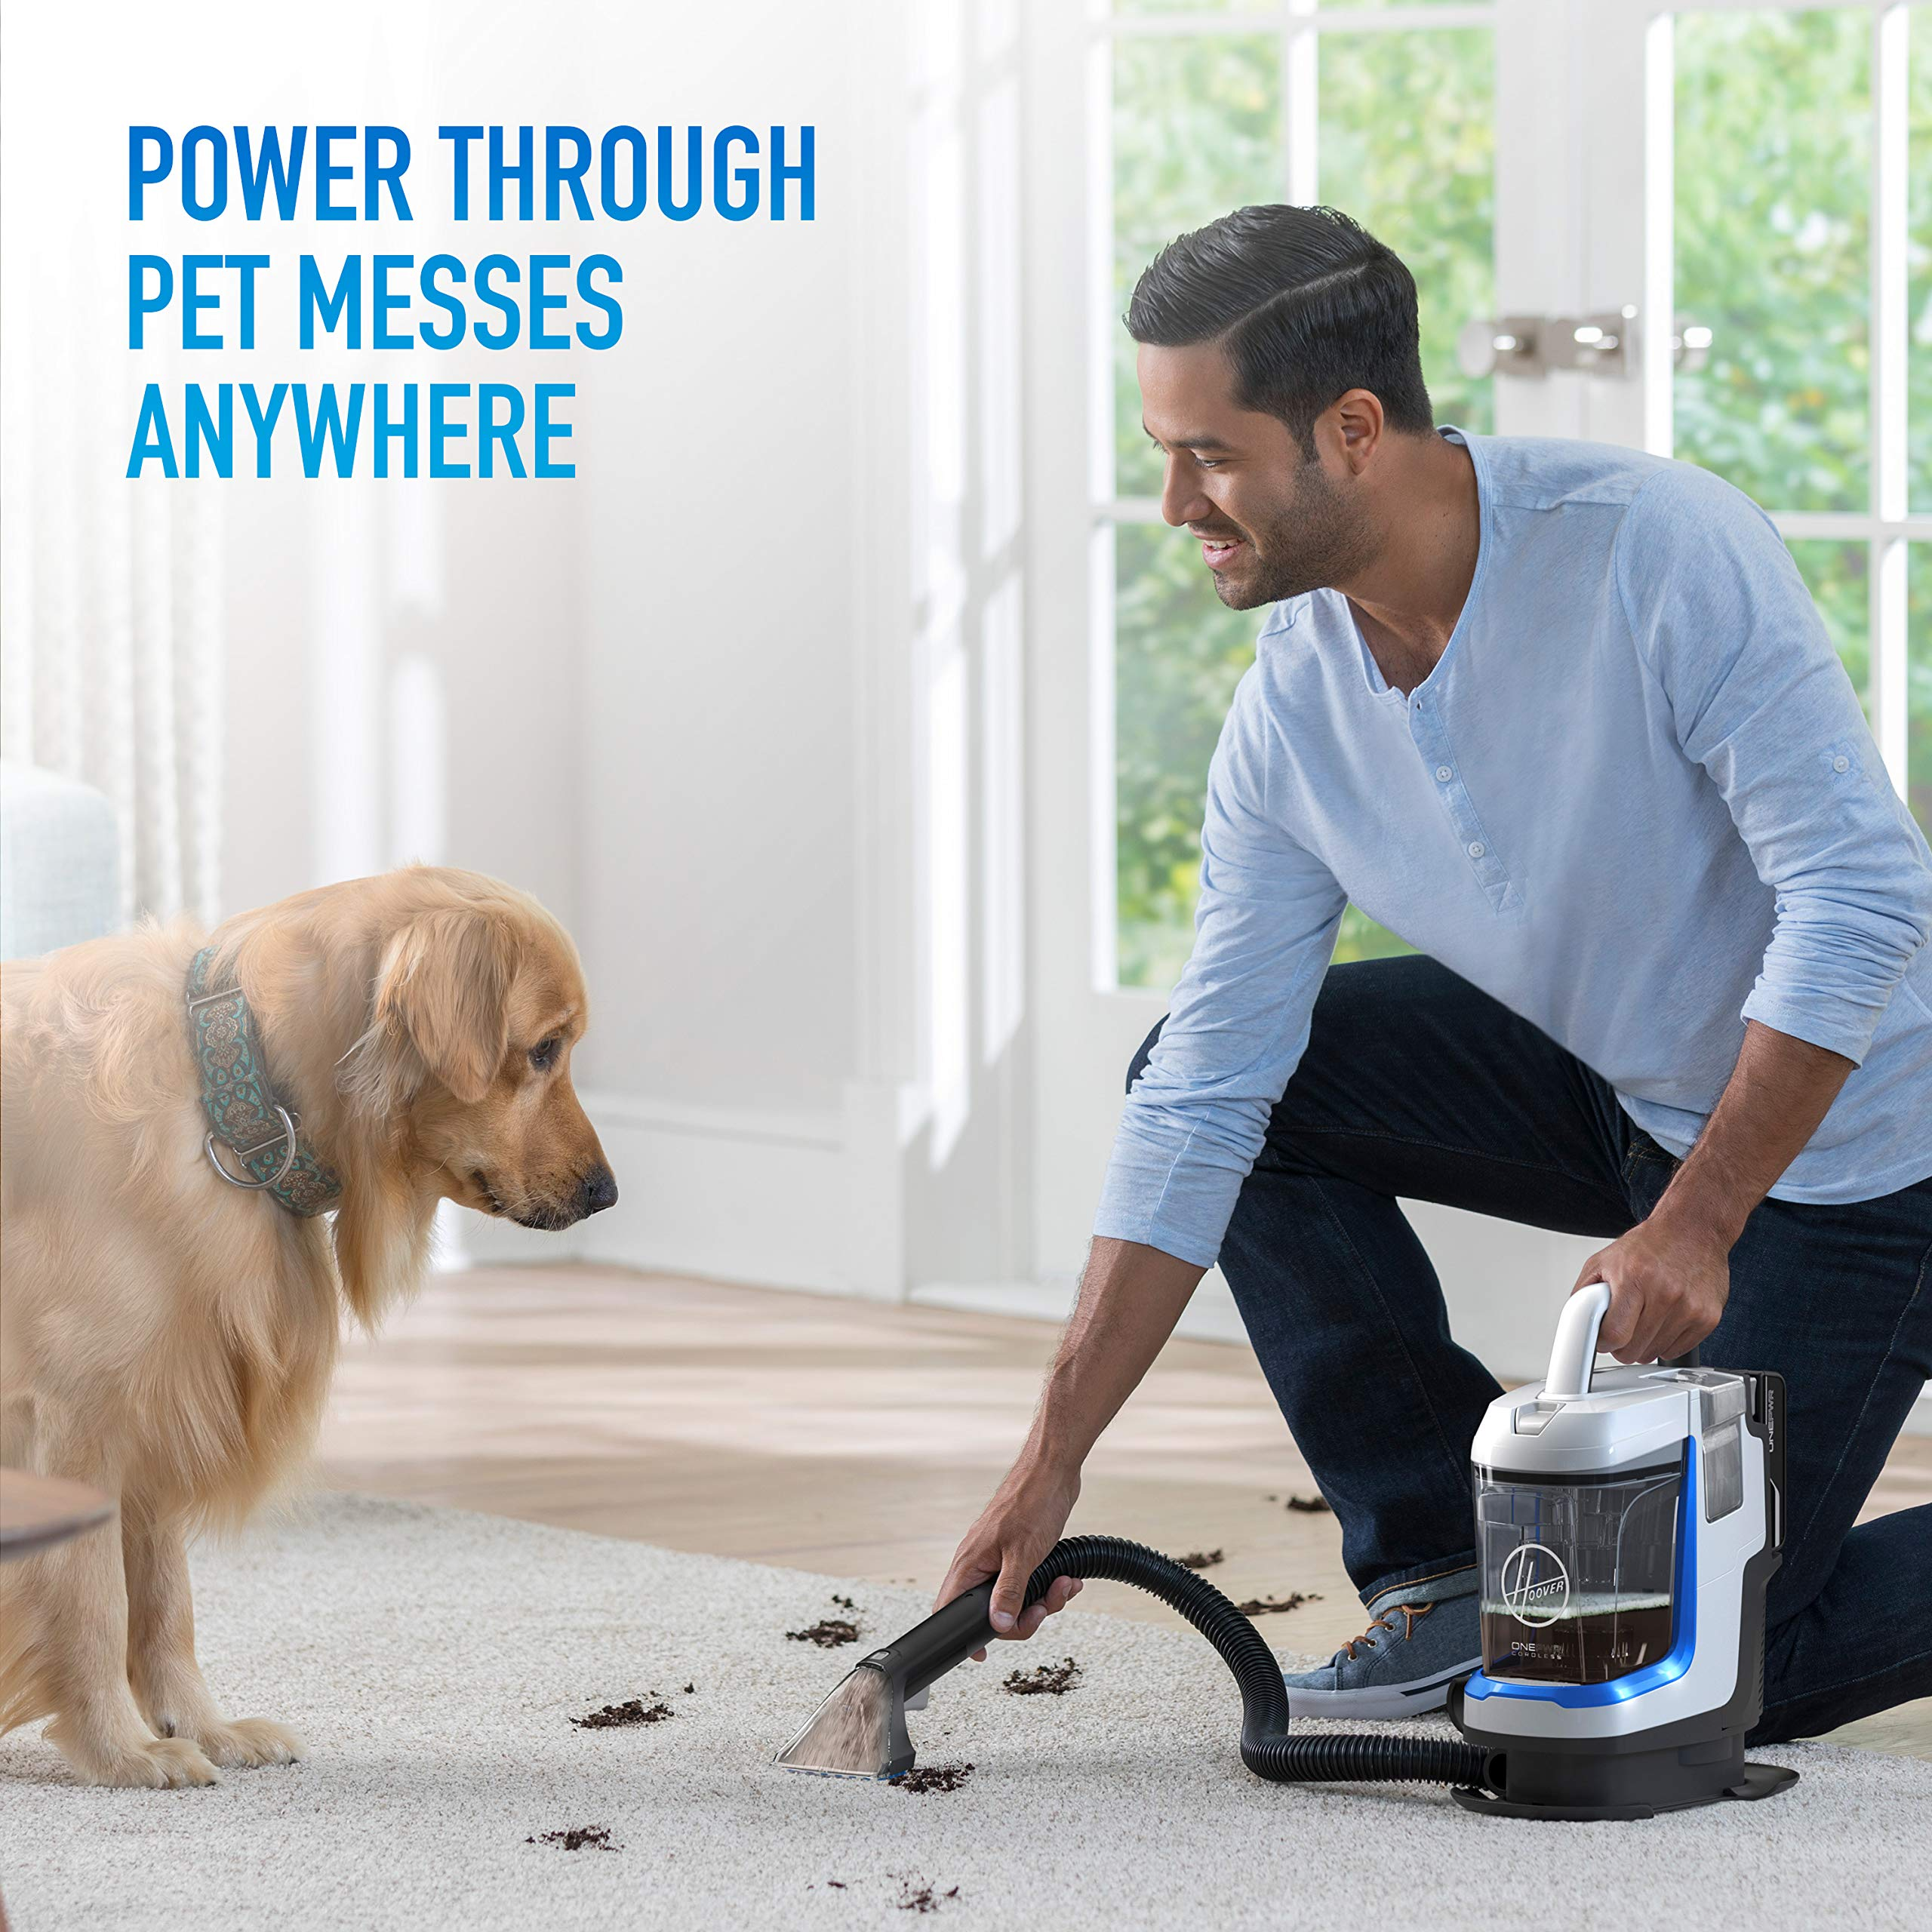 Hoover ONEPWR Spotless GO Cordless Carpet and Upholstery Cleaner, Portable, Lightweight, BH12001, White by Hoover (Image #4)